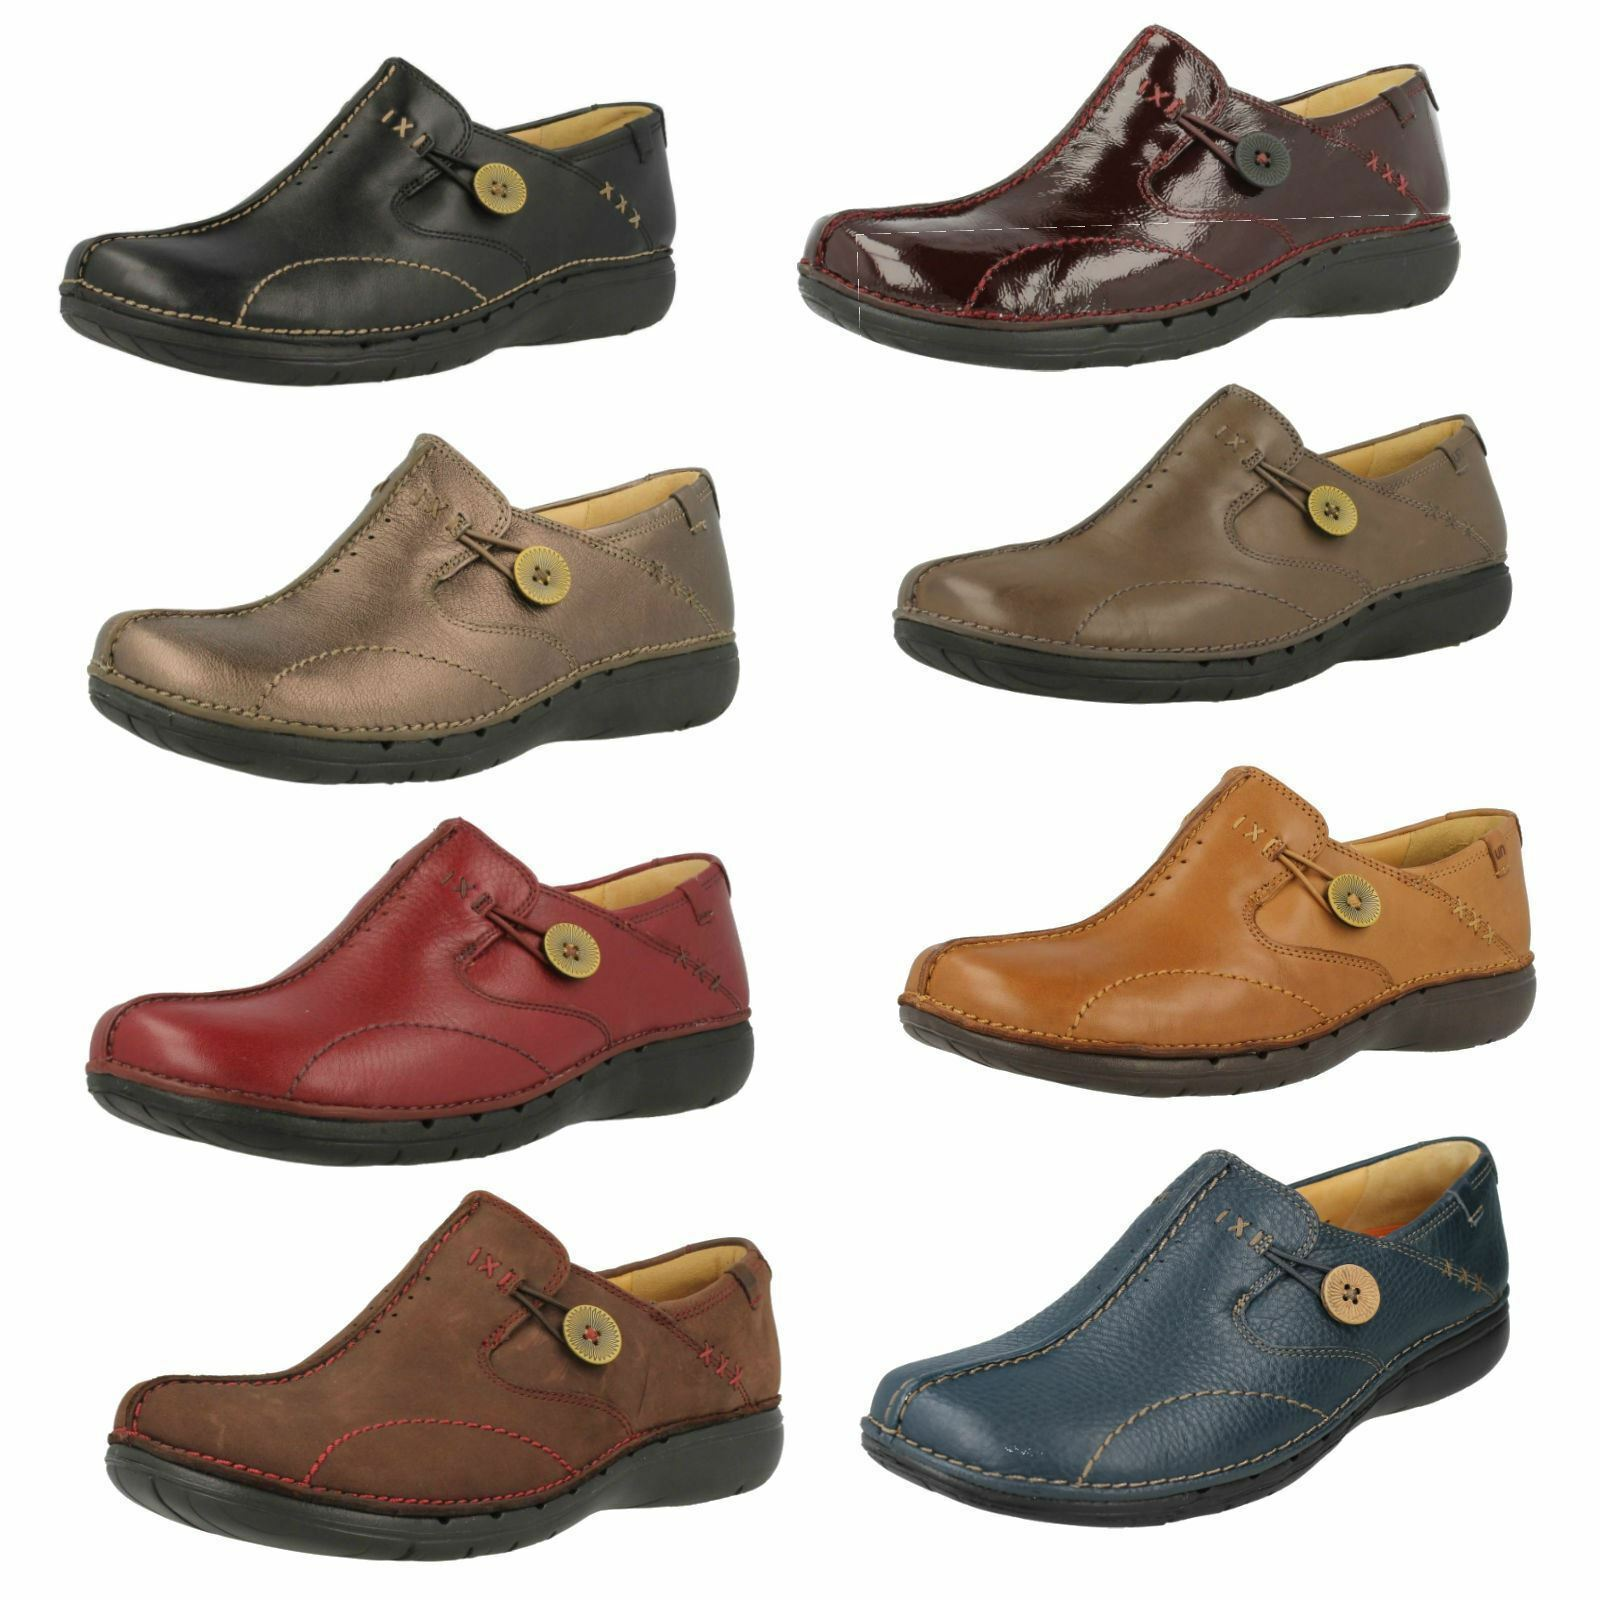 LADIES CLARKS UNSTRUCTURED LEATHER LEATHER UNSTRUCTURED SLIP ON CUSHIONED FLAT SLIP ON SHOES UN LOOP 002c56